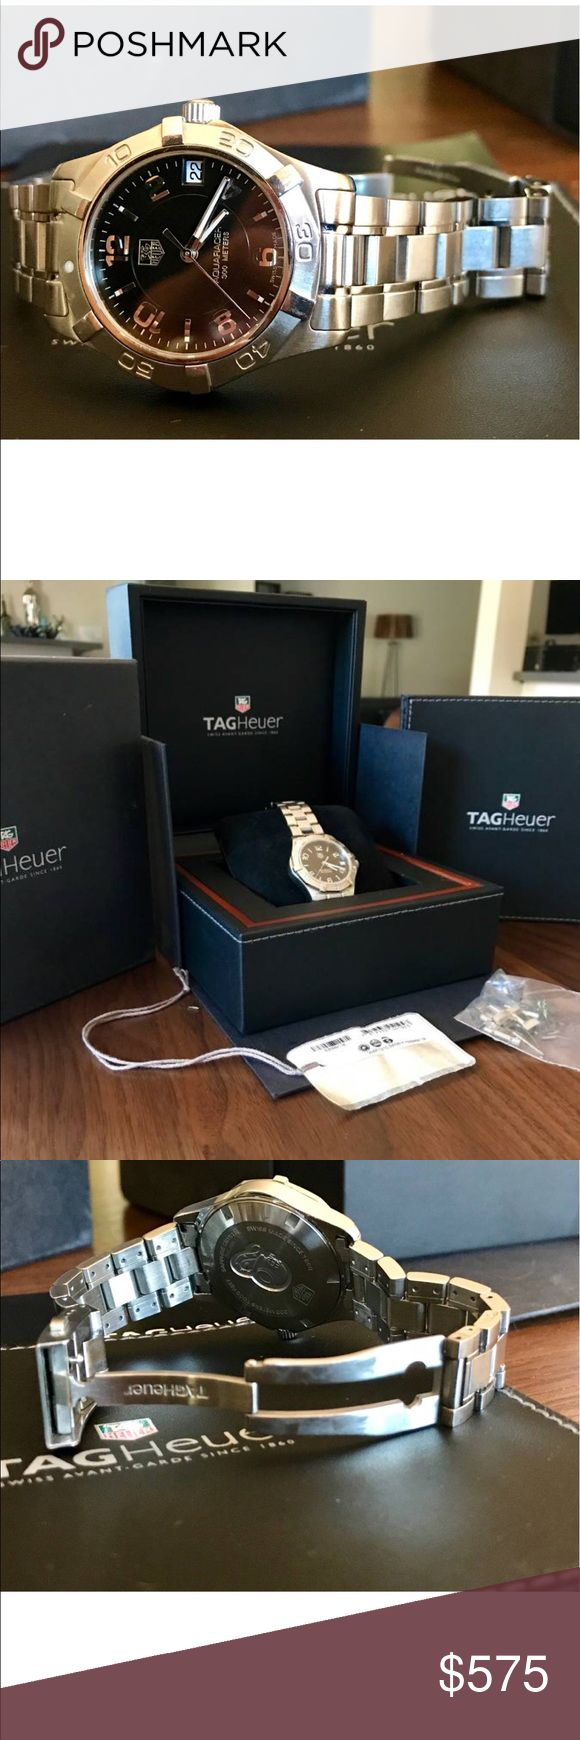 Ladies Tag Heuer watch Excellent condition with normal desk diving wear. I am the original owner and have had for  5 years.  Still have original box, paperwork, sales tag and band links. Model # WAF1310.BA0817. Stainless steel Swiss quartz Tag Heuer Jewelry